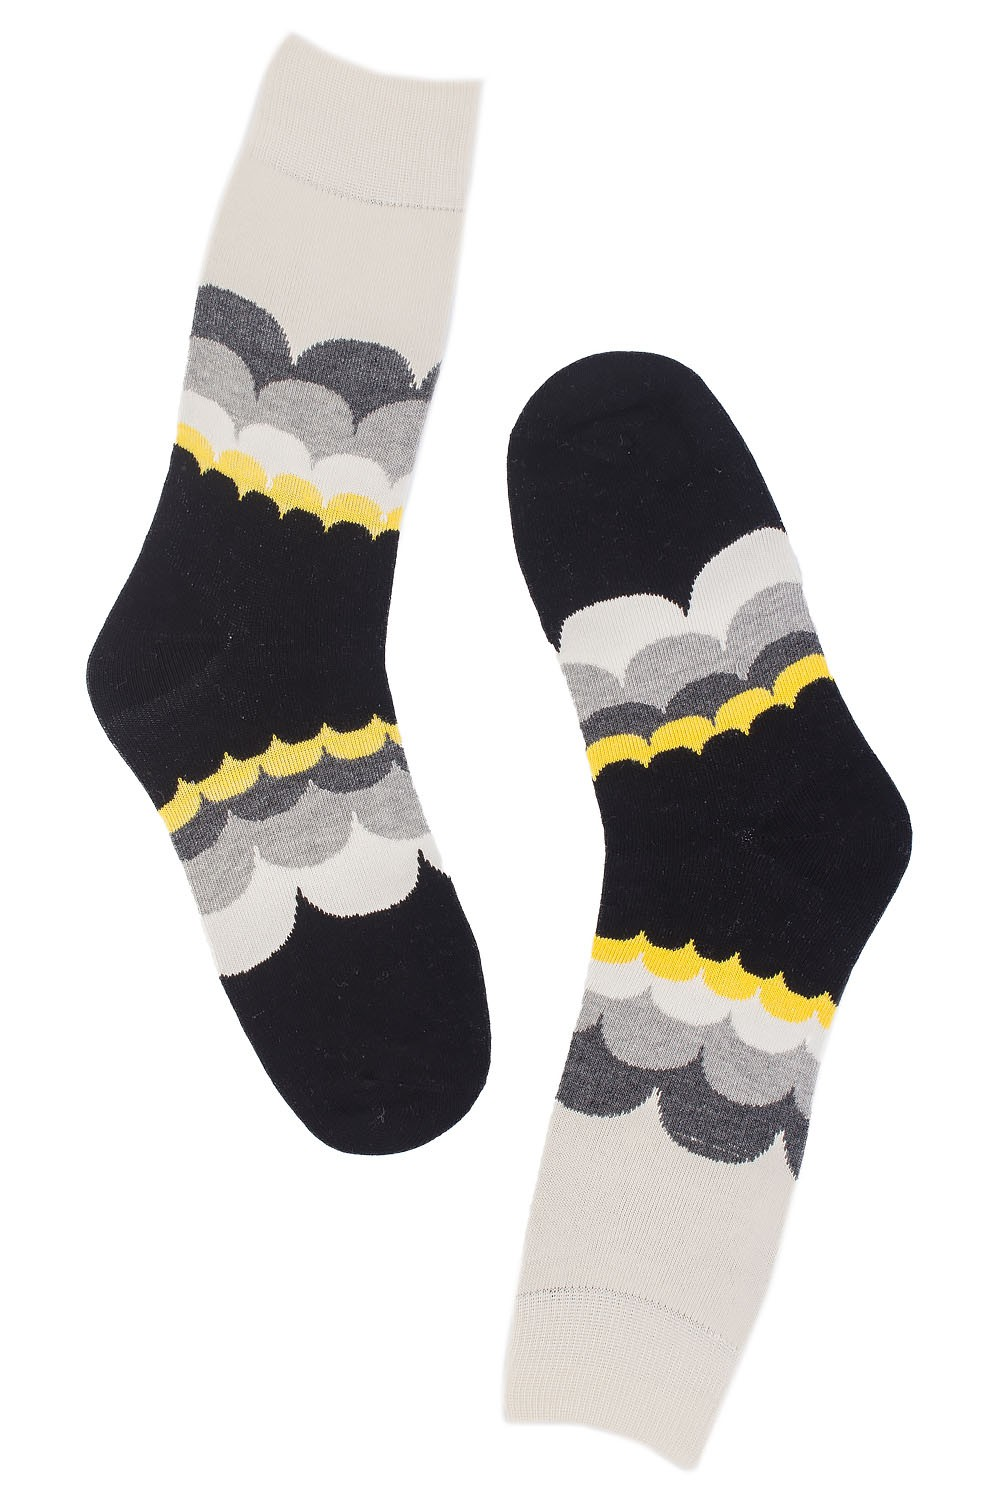 Cloud Surfer Cream Red Black Socks